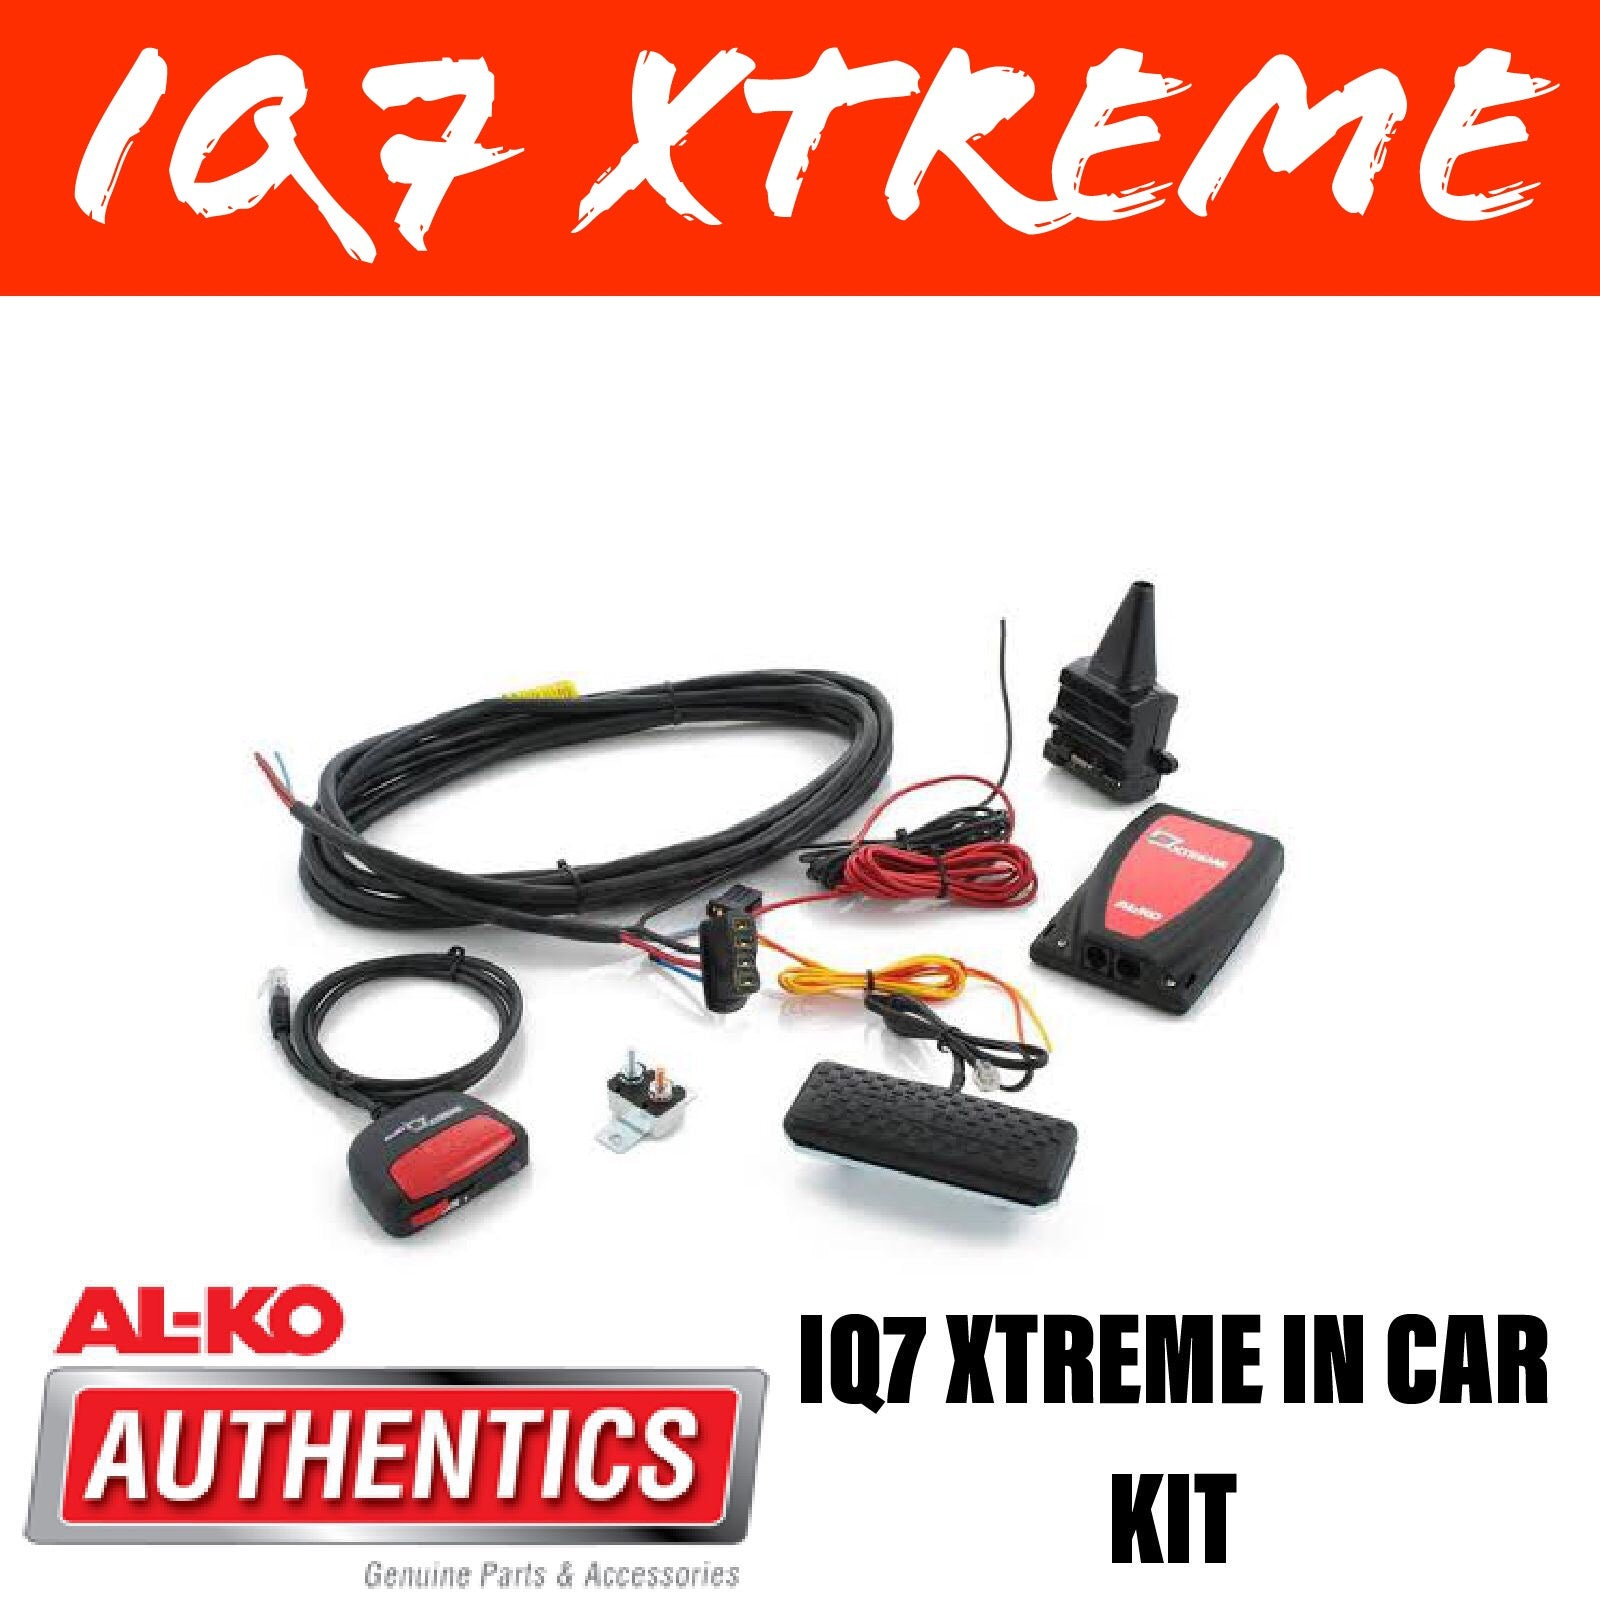 AL-KO IQ7 XTREME IN CAR KIT Manual